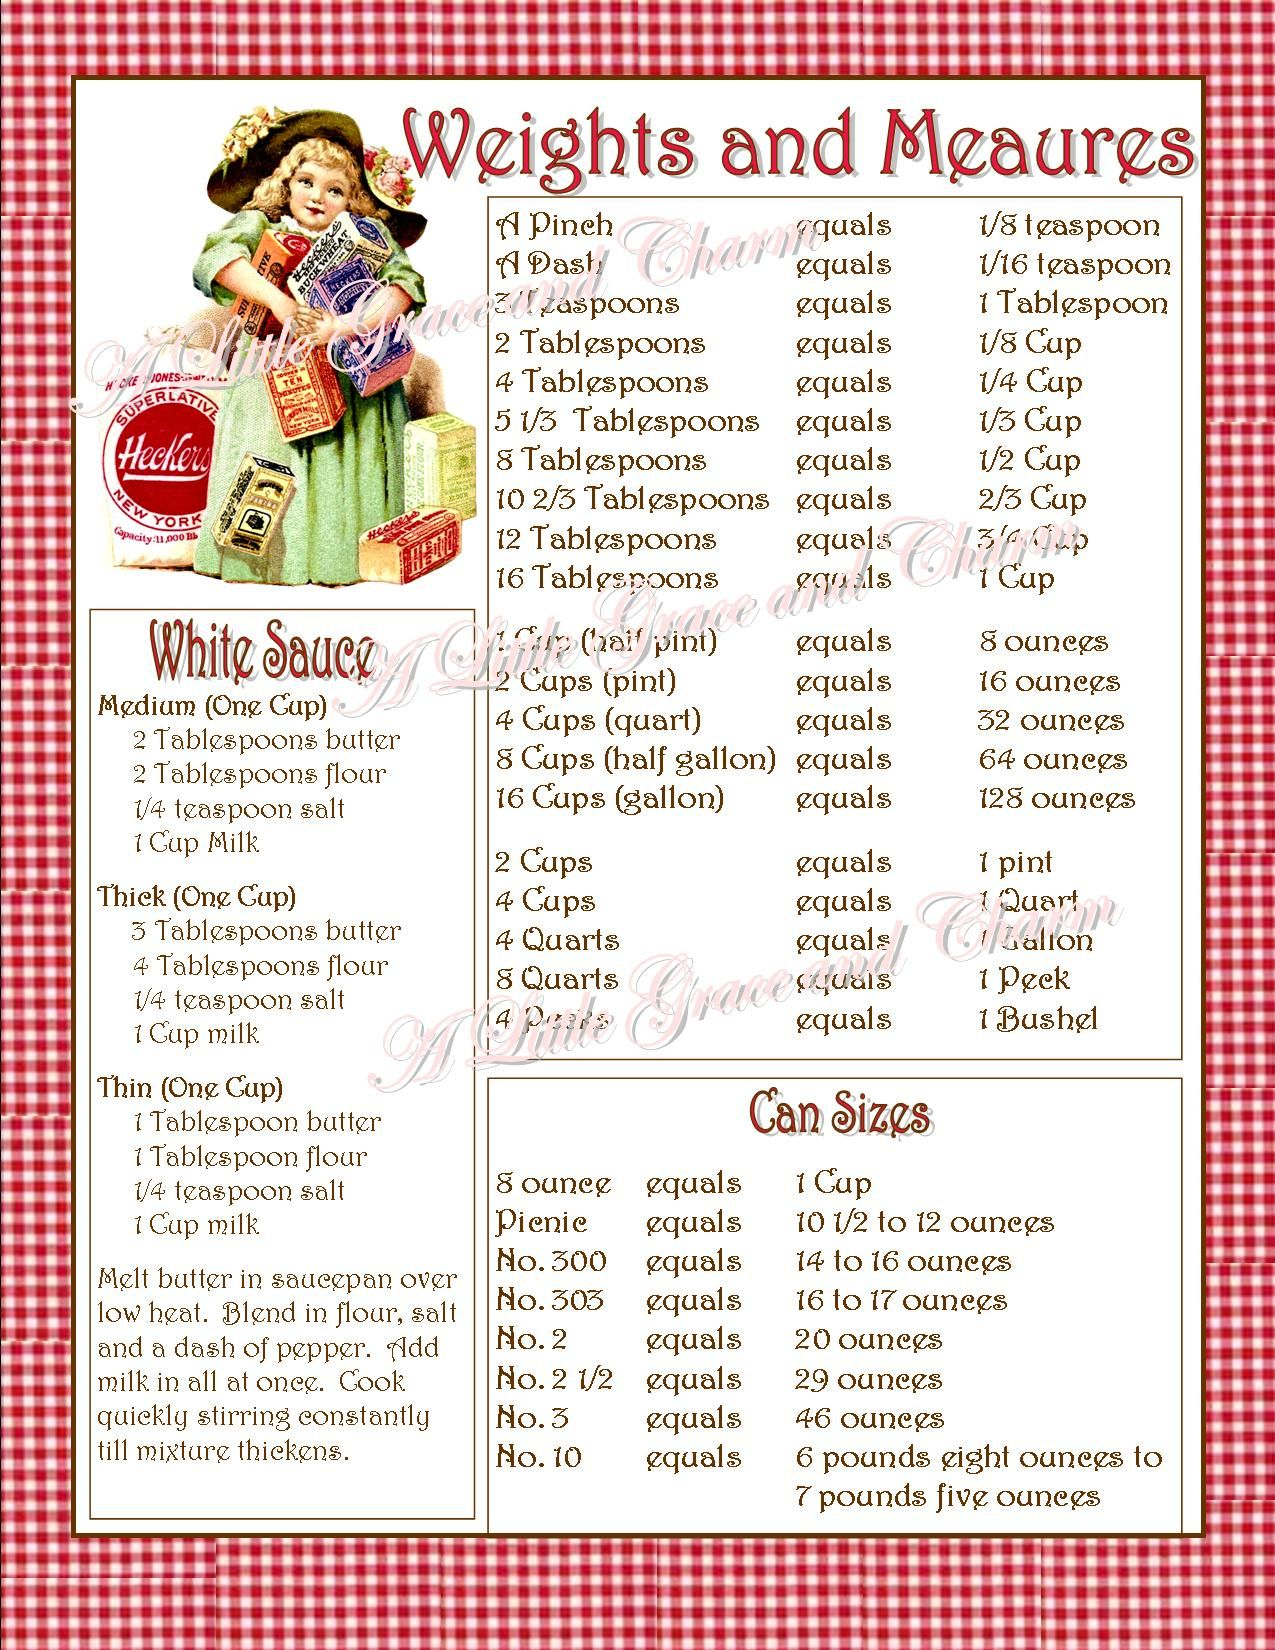 Weights And Measures Chart For Inside The Kitchen Cabinet